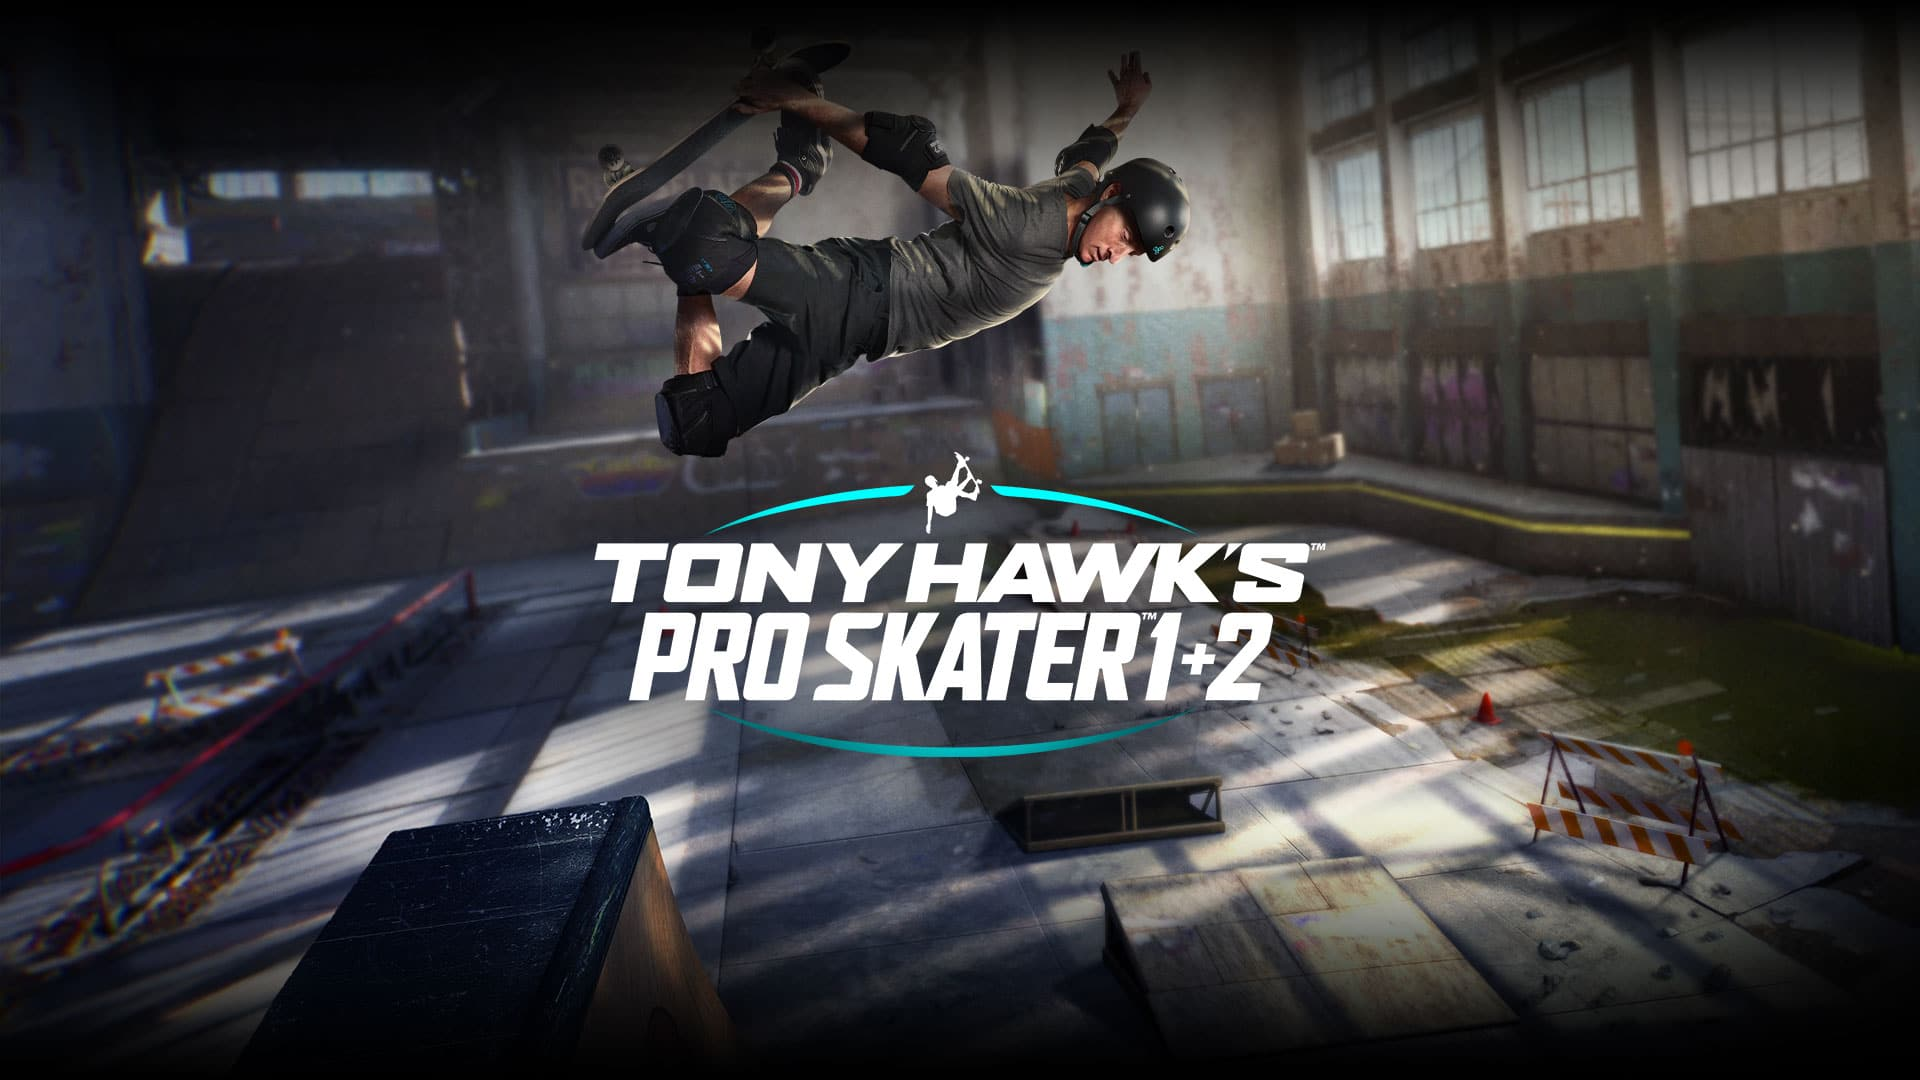 Tony Hawk's Pro Skater 1+2 Playstation 5 GamePlay